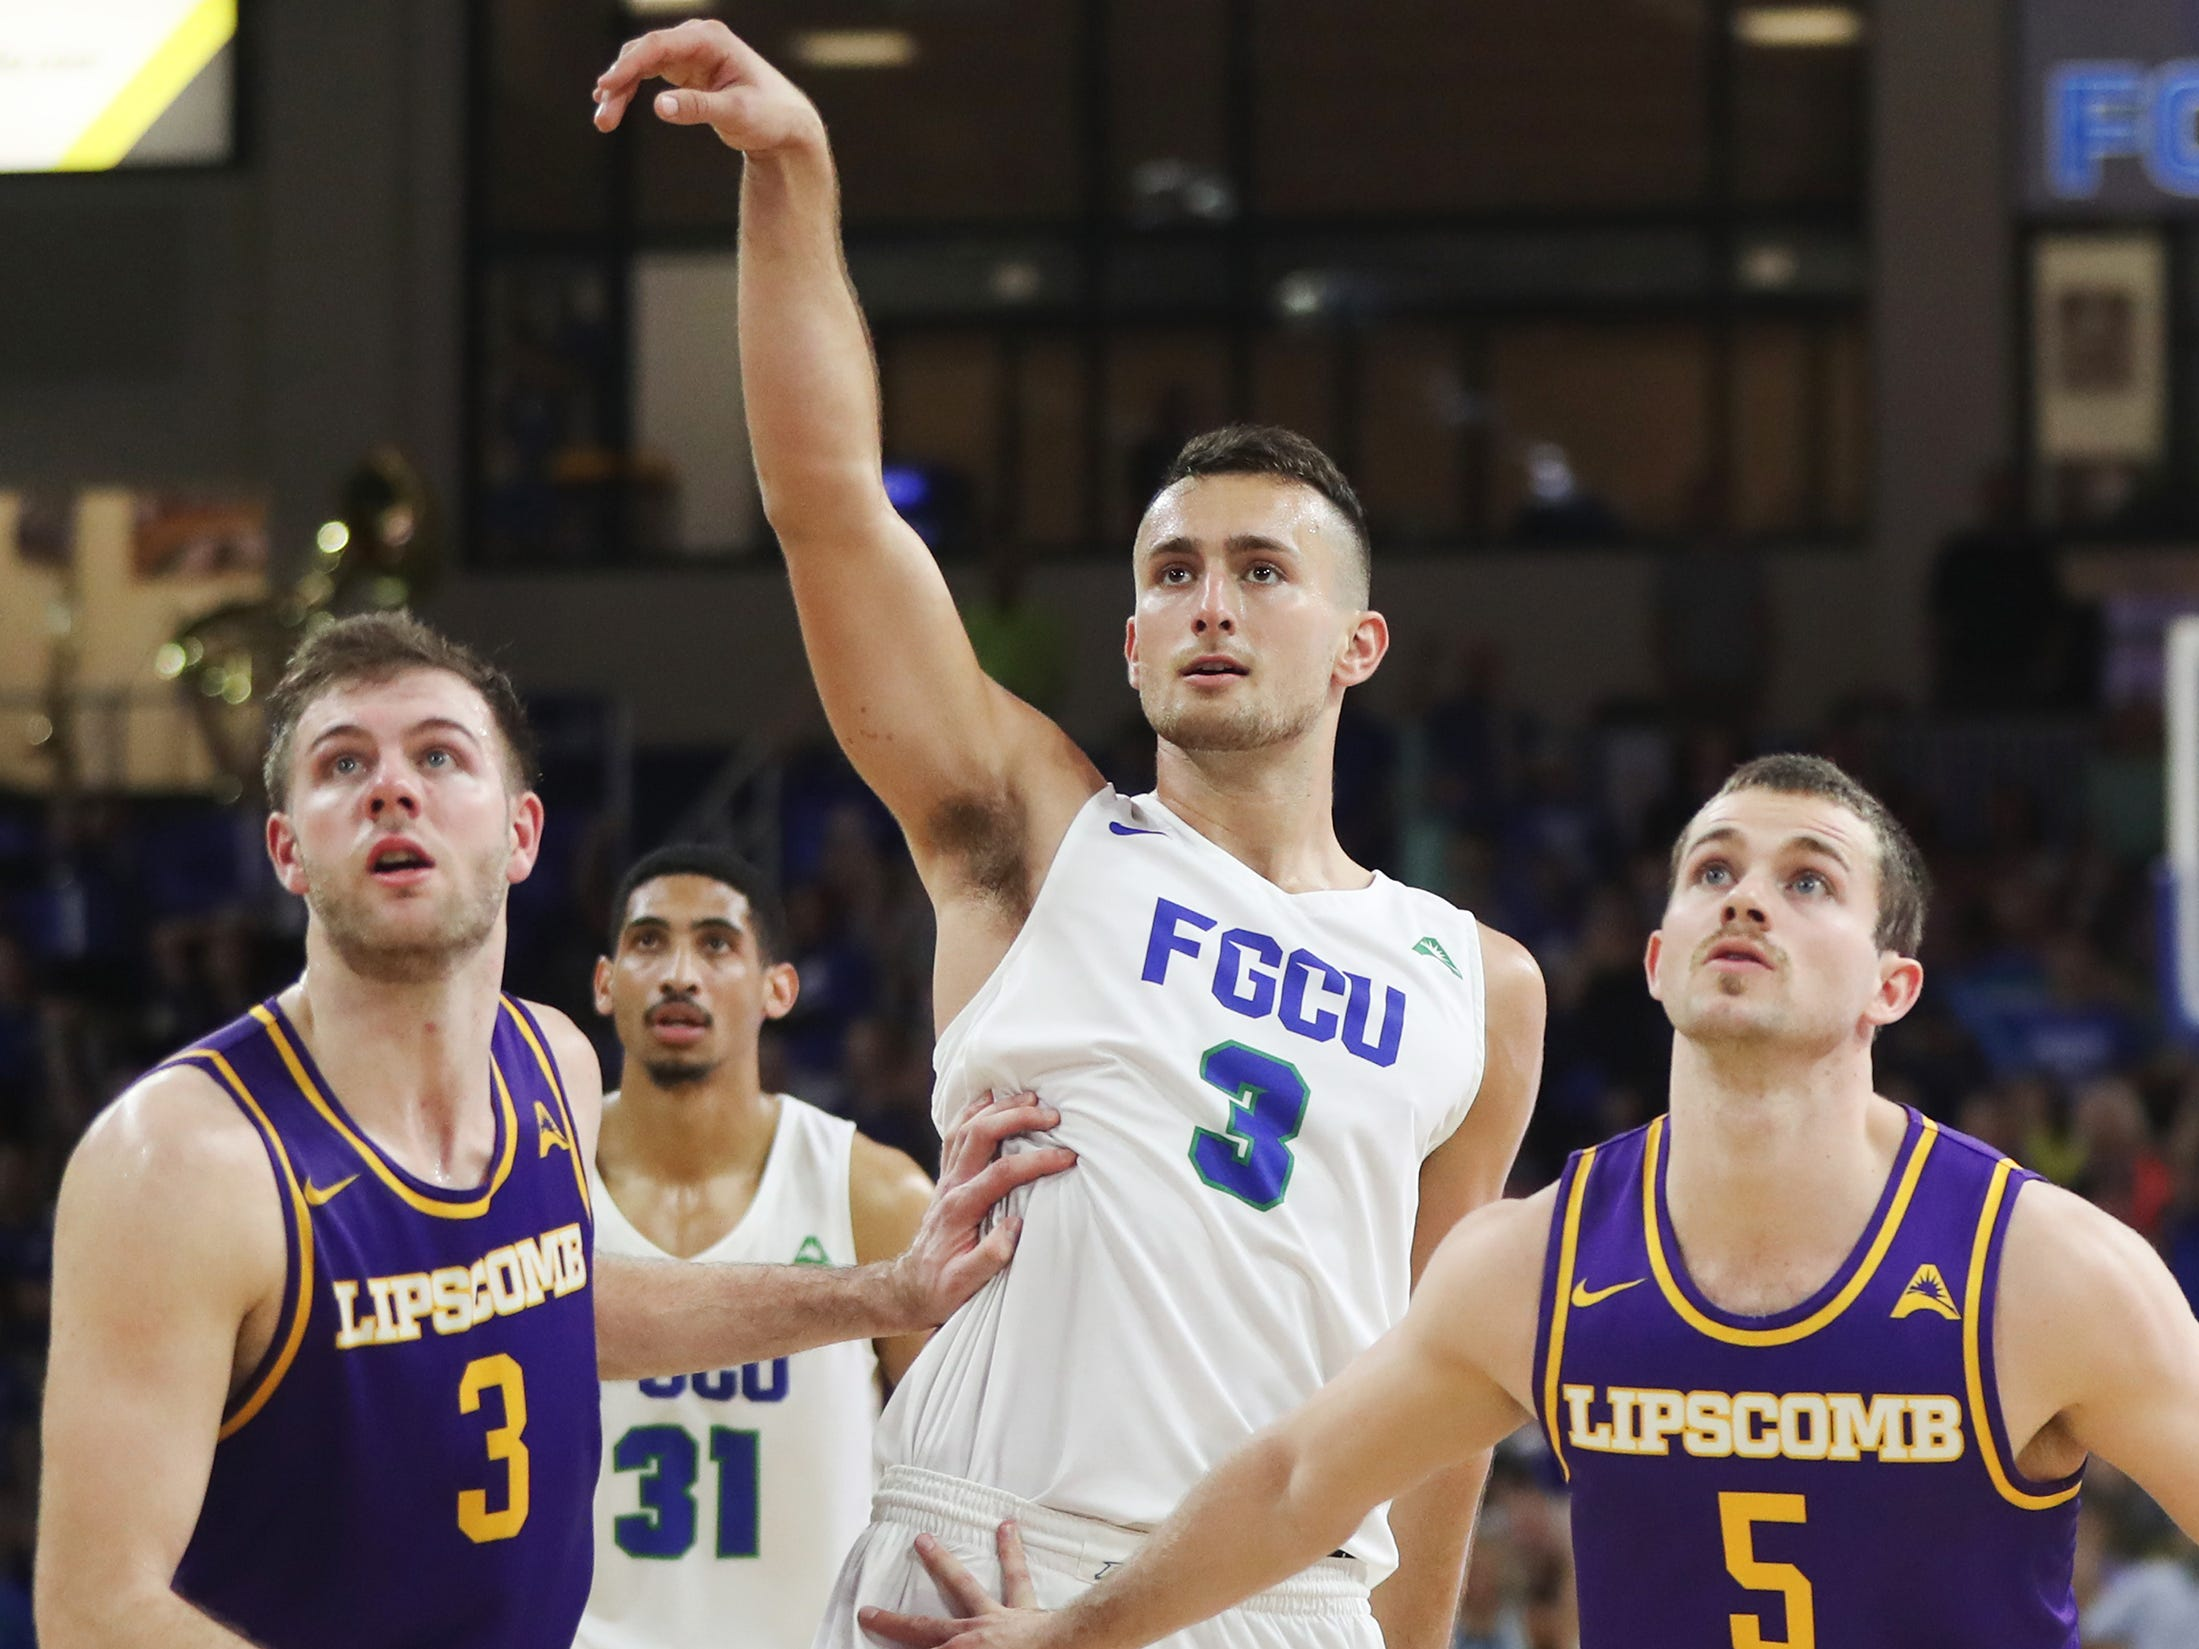 Florida Gulf Coast University's Christian Caryle, center, makes a late-game free throw against Lipscomb's on Wednesday at FGCU in Fort Myers. FGCU beat Lipscomb 67-61.